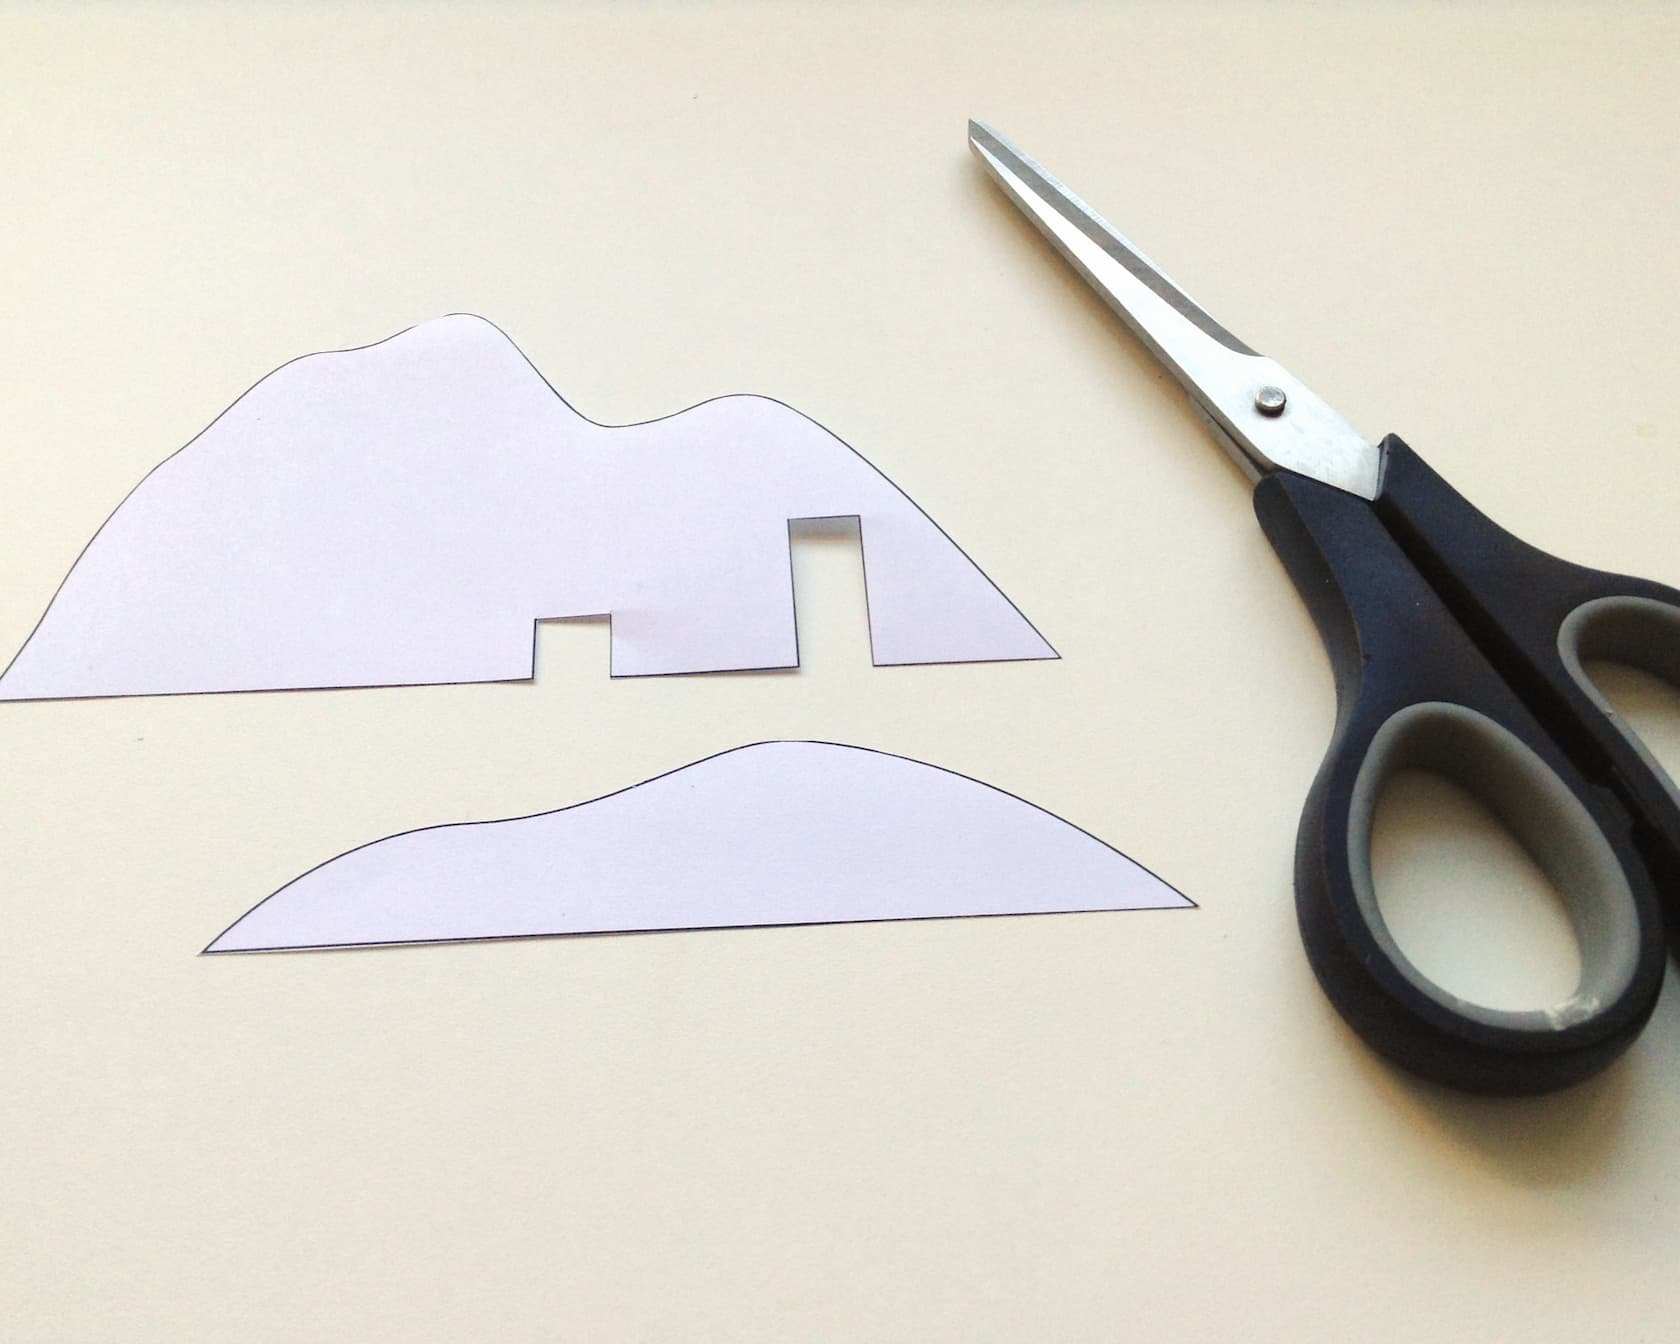 Cut out the mountain shapes